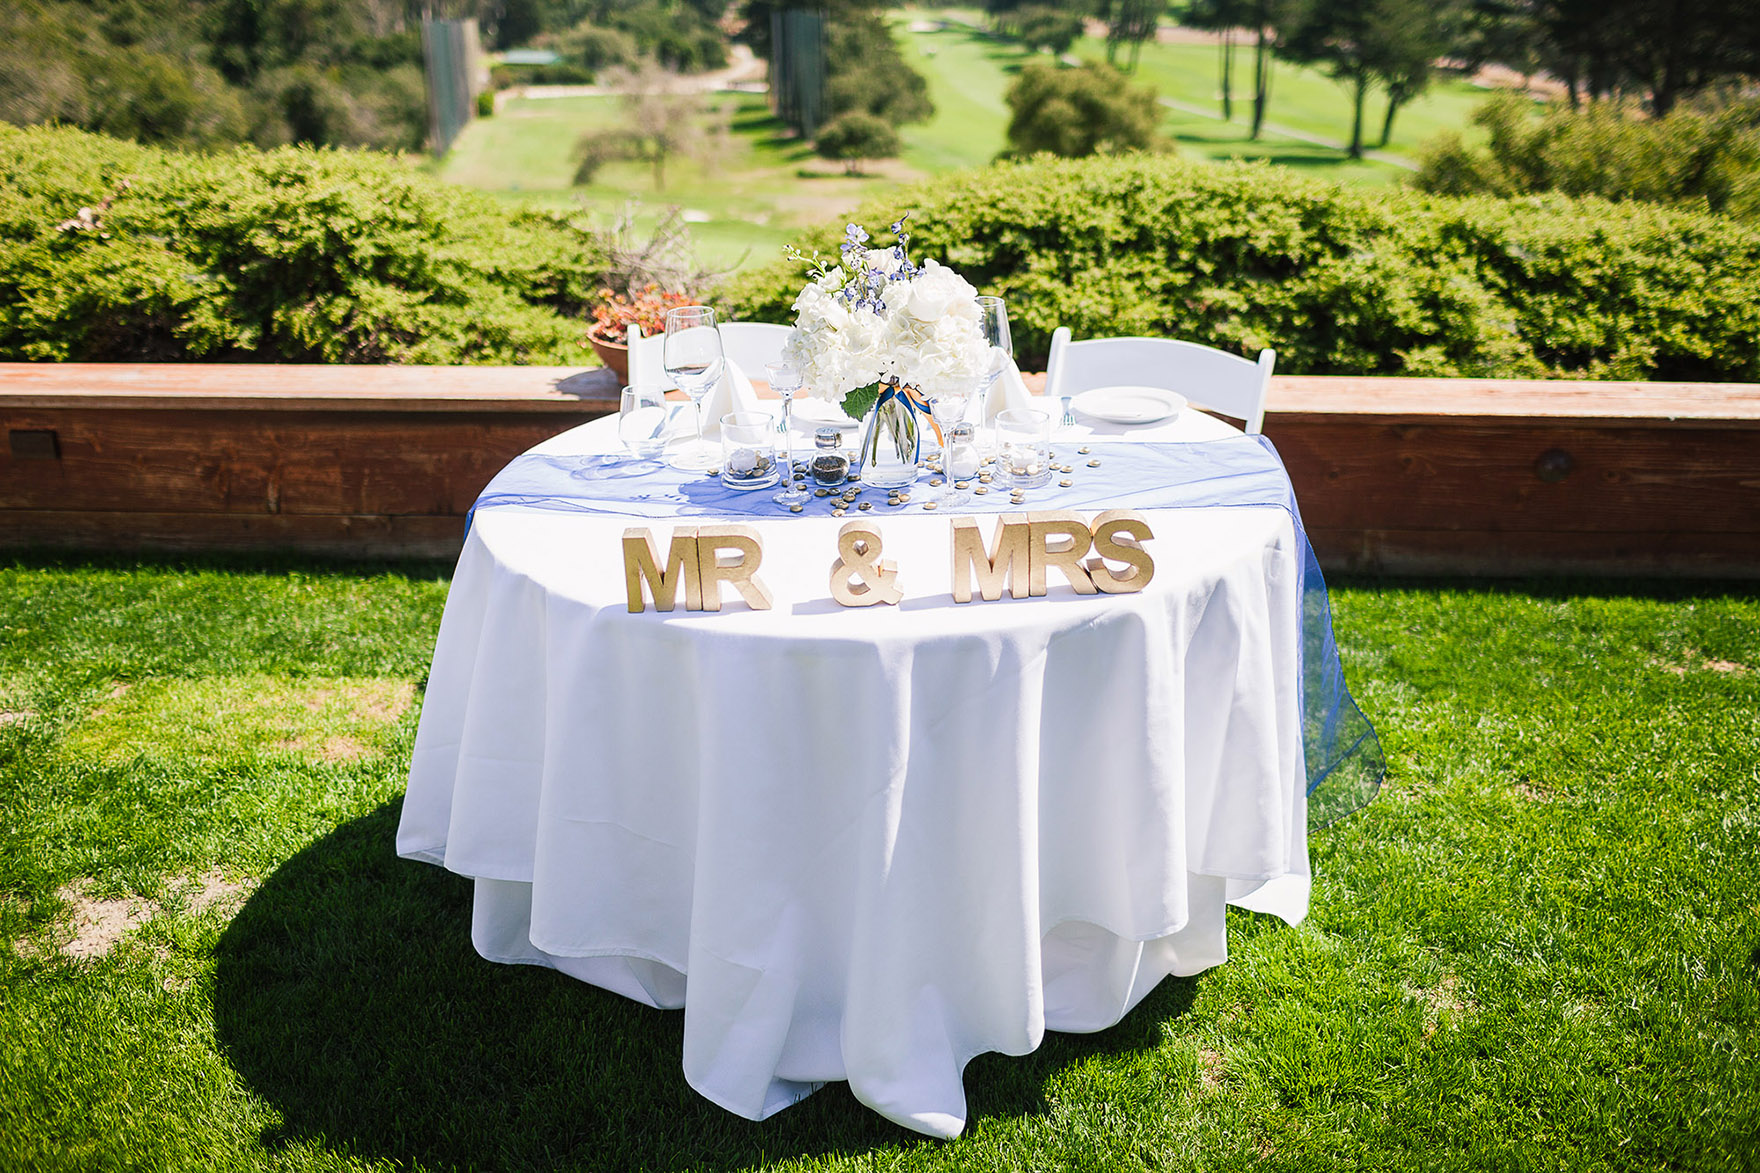 head table mr. and mrs. decor and diy details table settings among the green lawn that over looks the monterey bay vista view at the pasatiempo golf course at the bride and groom newlywed hollins house wedding the perfect santa cruz wedding venue